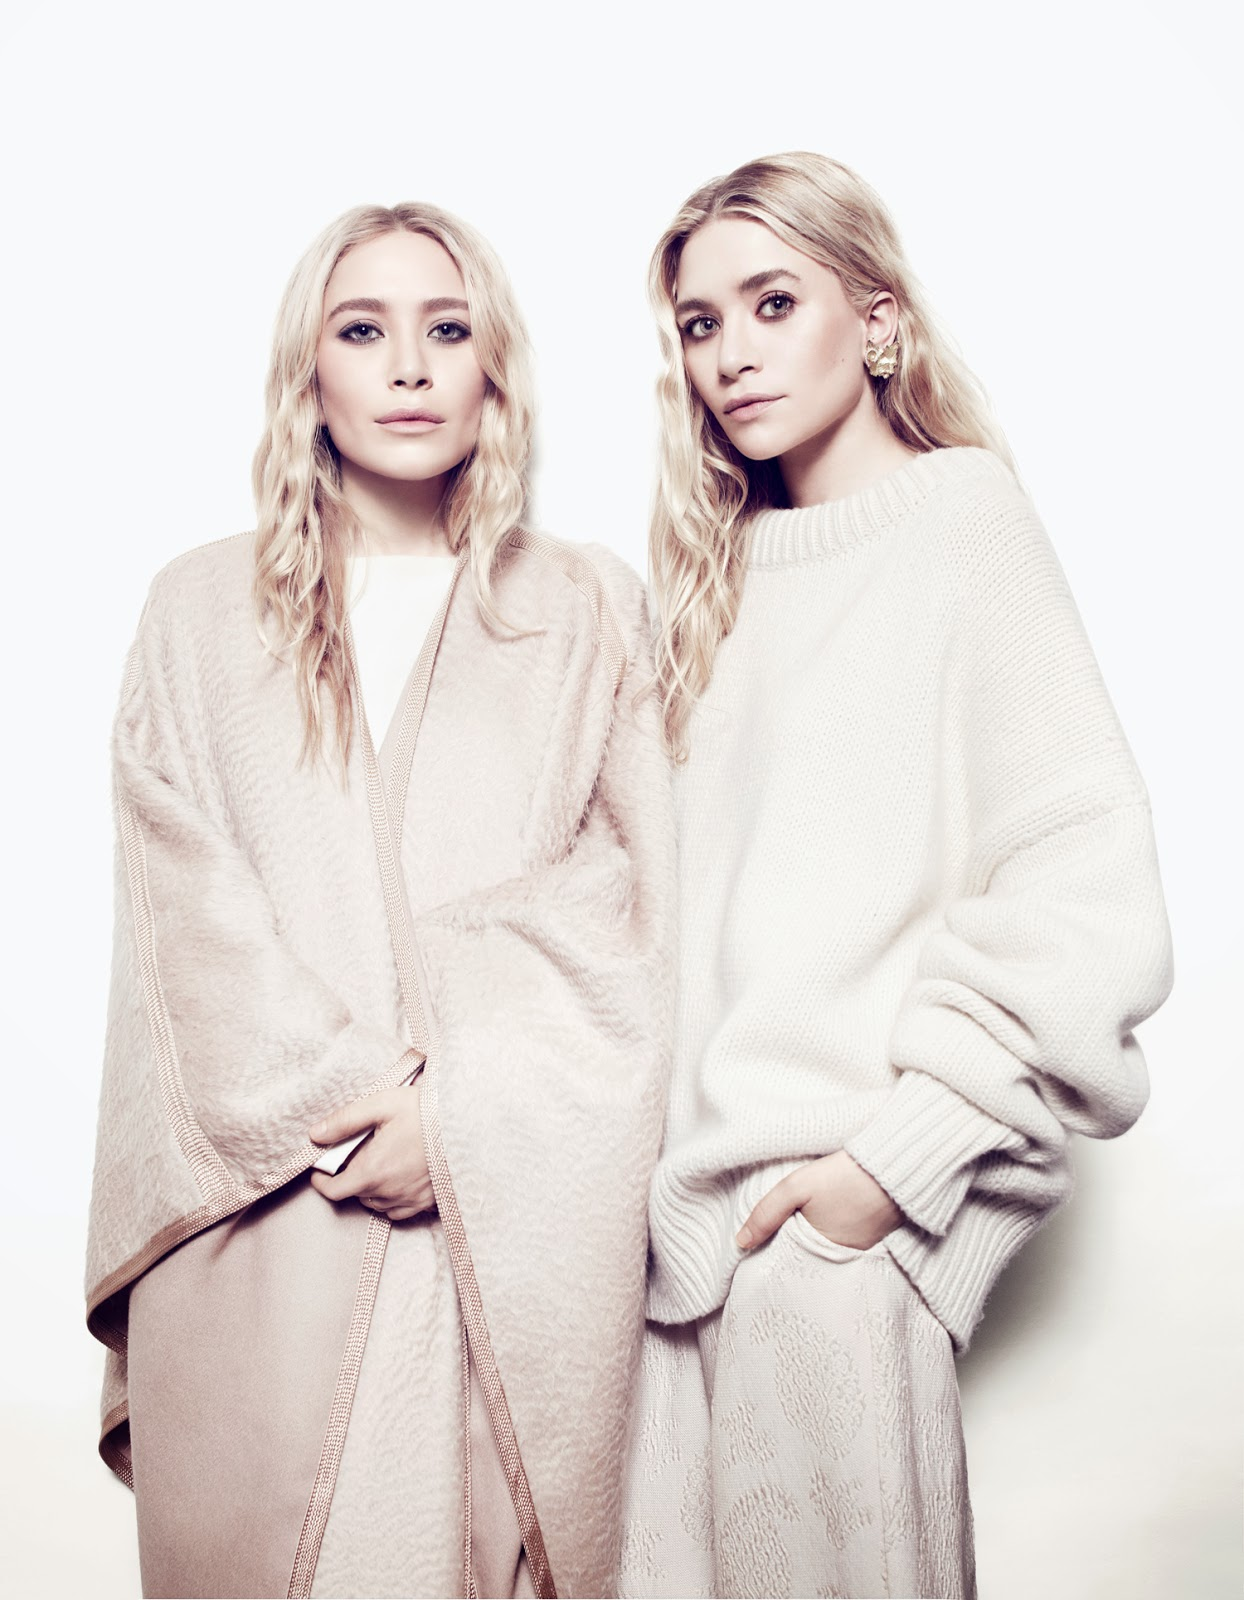 NET-A-PORTER-THE-EDIT-MAGAZINE-OLSEN-TWINS-MARY-KATE-AND-ASHLEY-OLSEN-PHOTOS-2